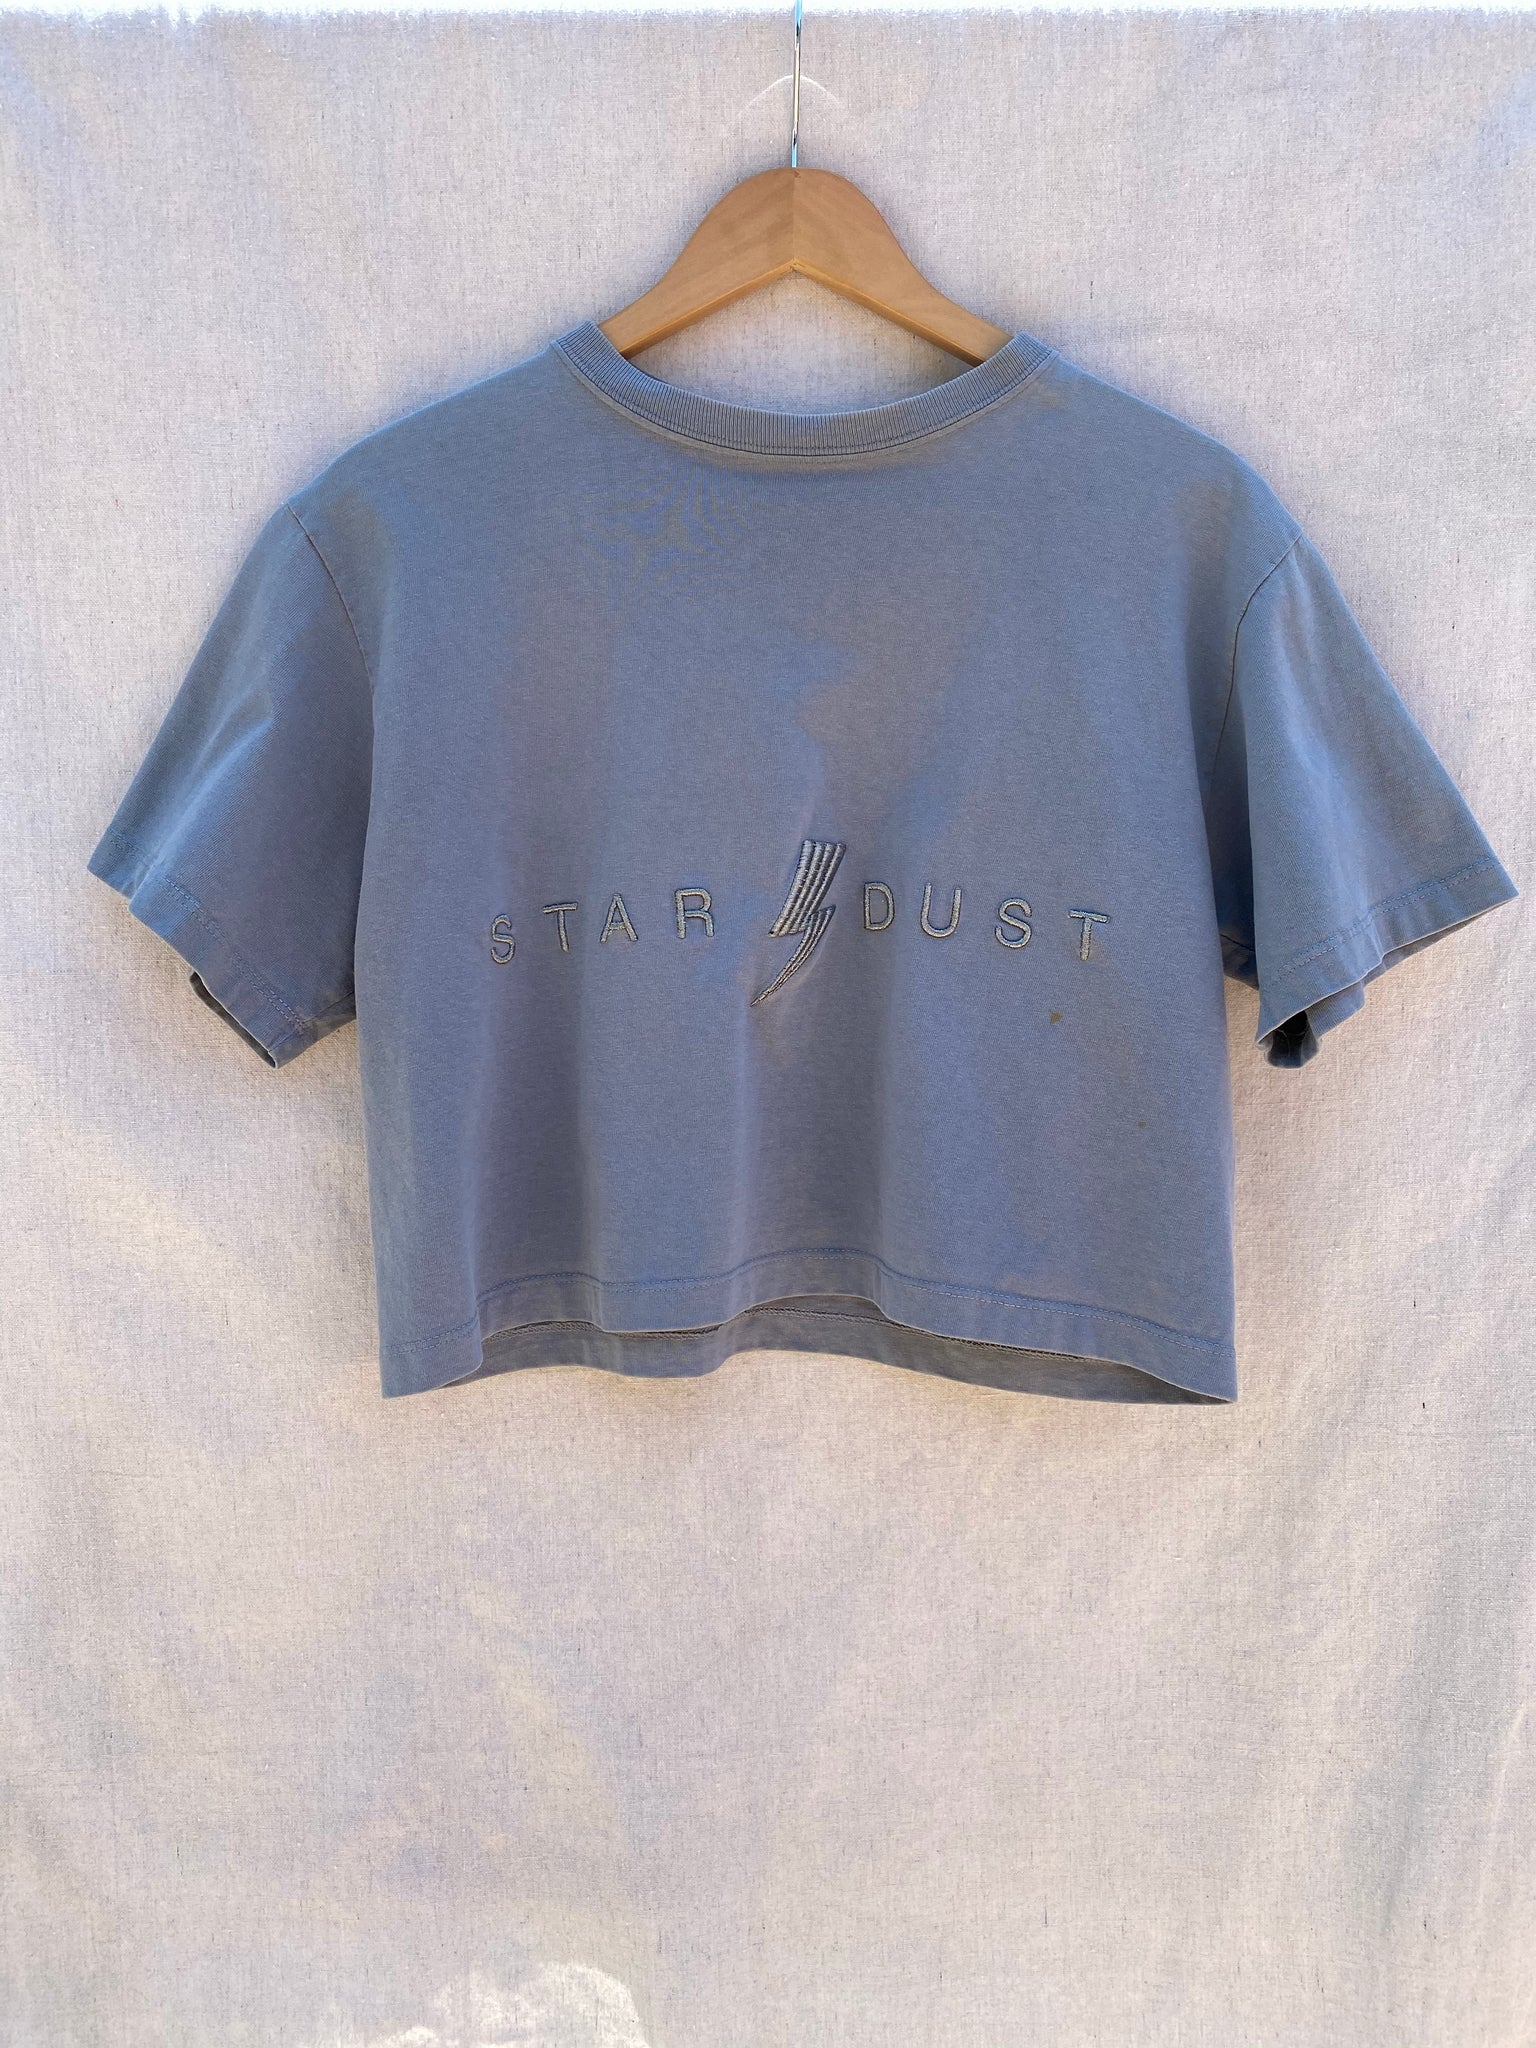 FULL FRONT VIEW OF CROPPED TEE IN SLATE GREY WITH STAR DUST EMBROIDERY ON IT.